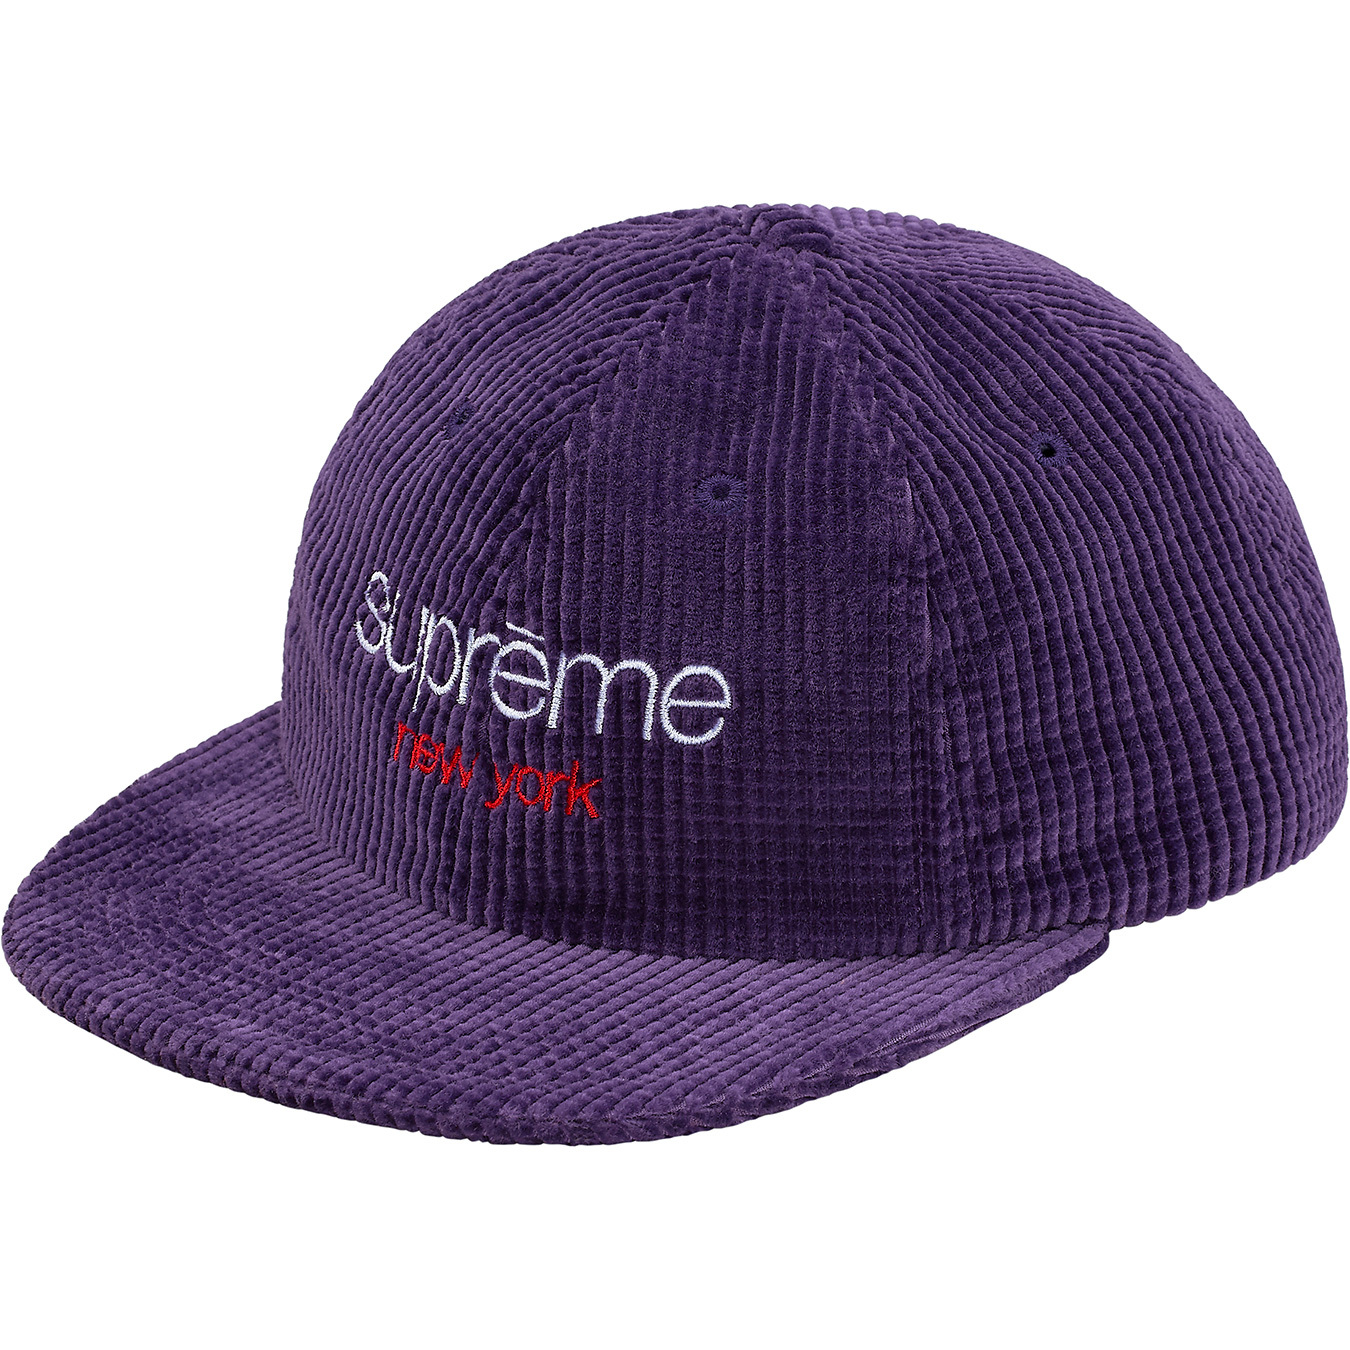 supreme-2017aw-fall-winter-waffle-cord-classic-logo-6-panel